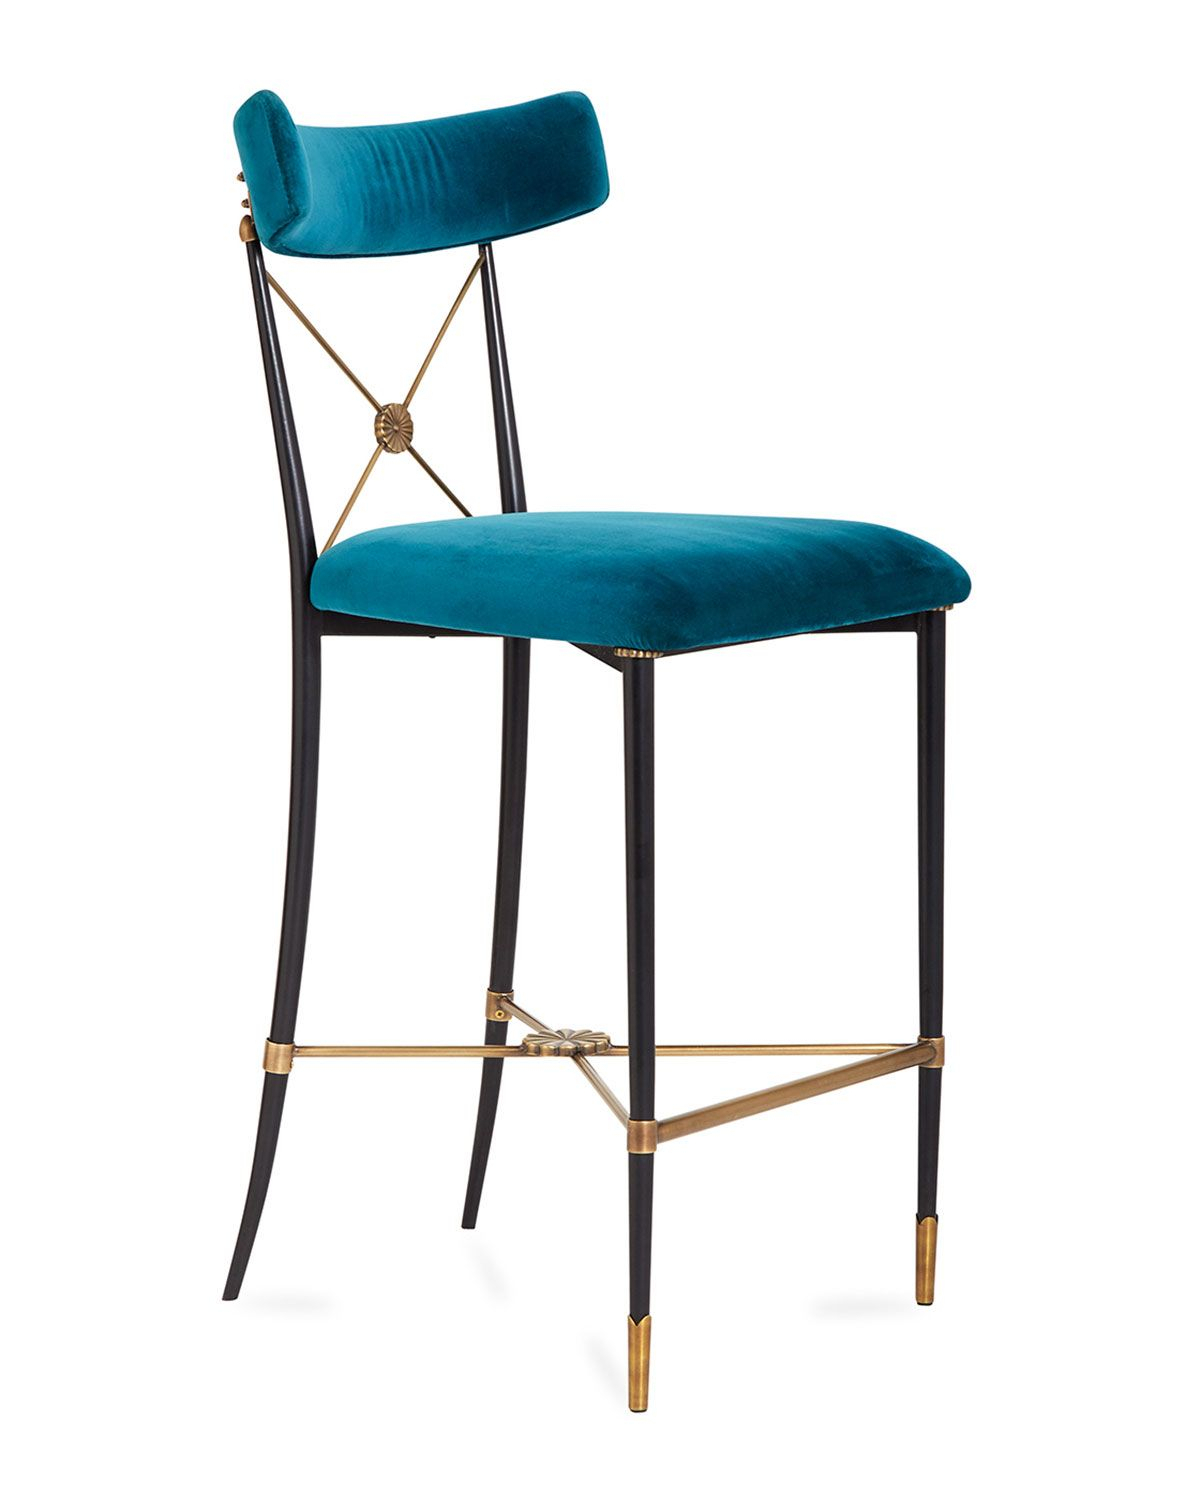 Jonathan Adler Rider Counter Stool | Products In 2018 | Pinterest Within Alder Grande Ii Sofa Chairs (View 20 of 25)